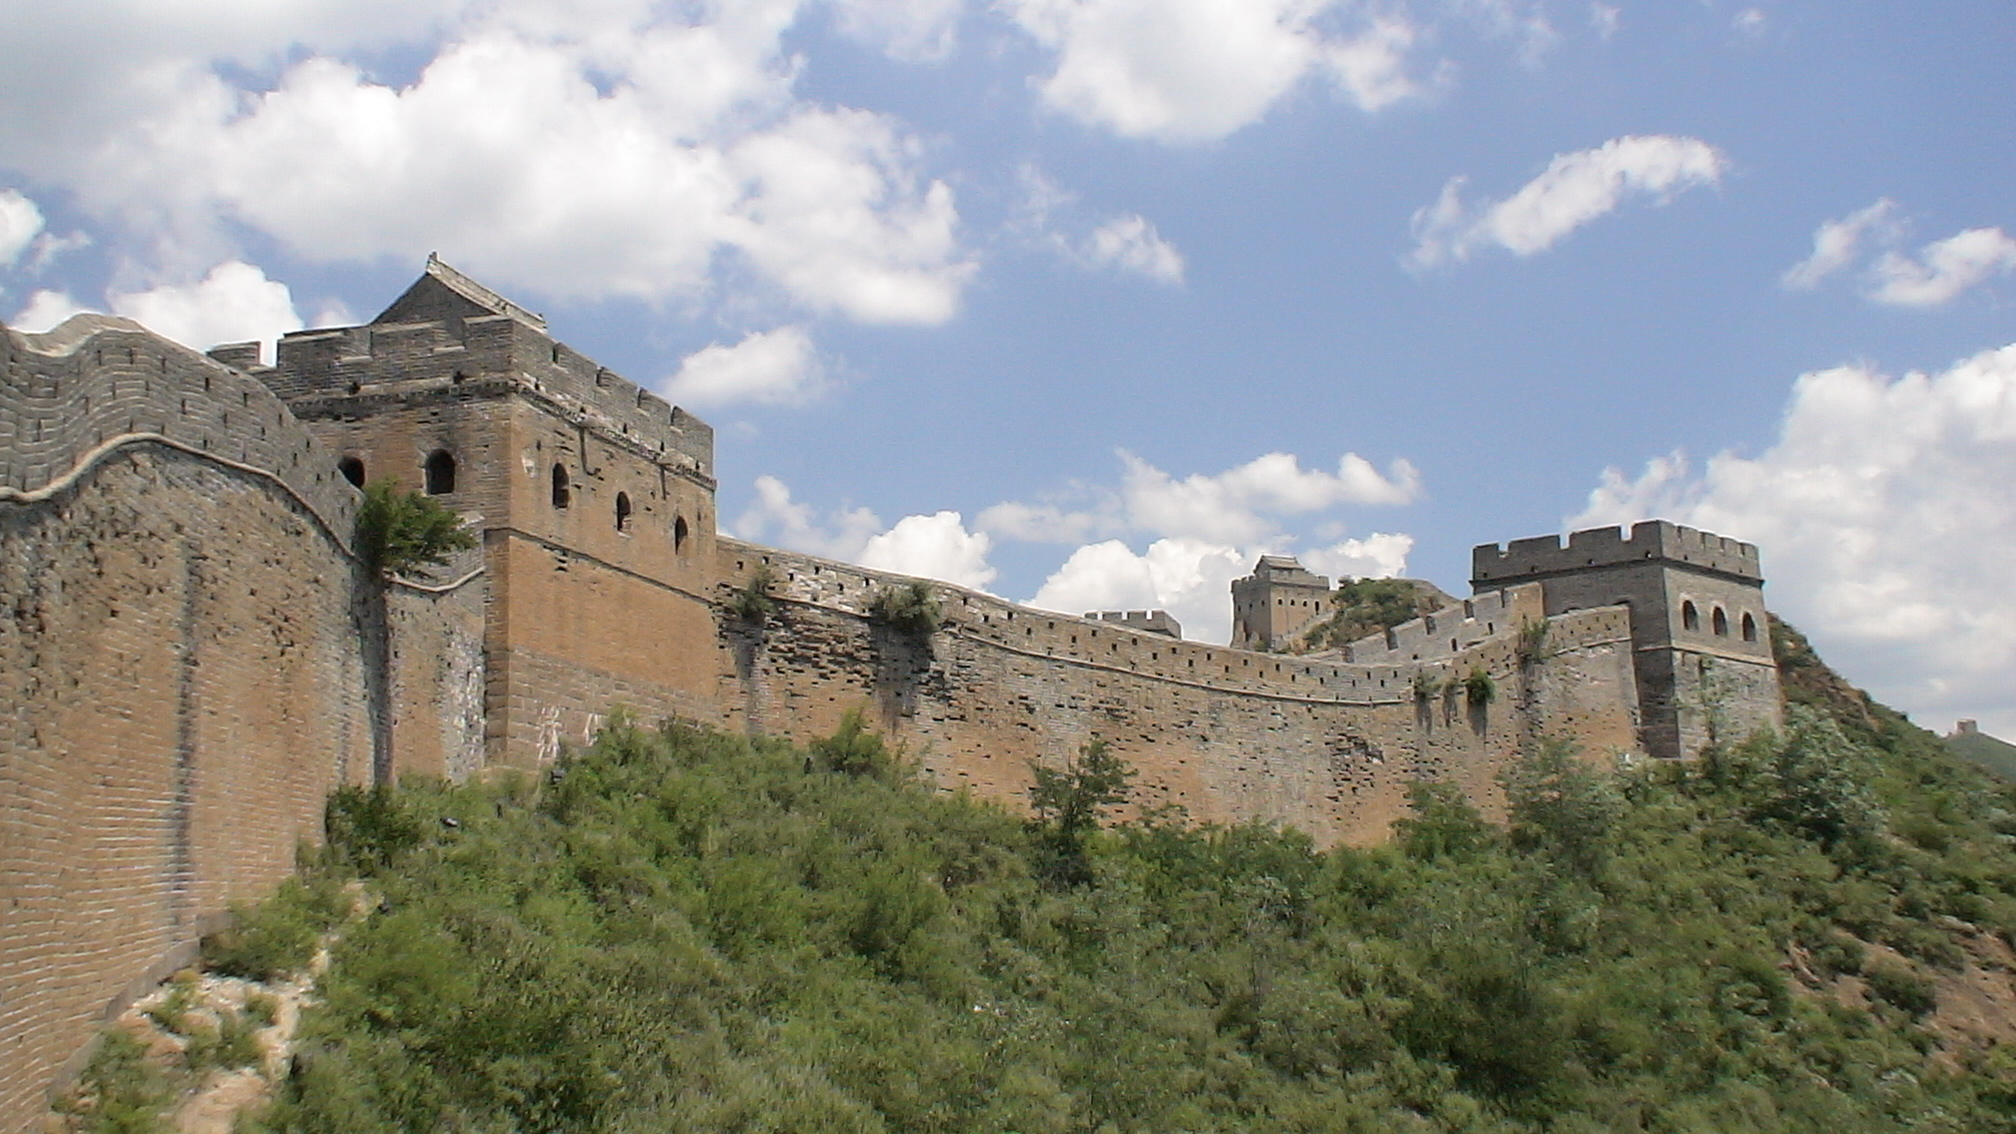 Pictures of Great Wall from Jinshanling Simatai China with Photos 2016x1134